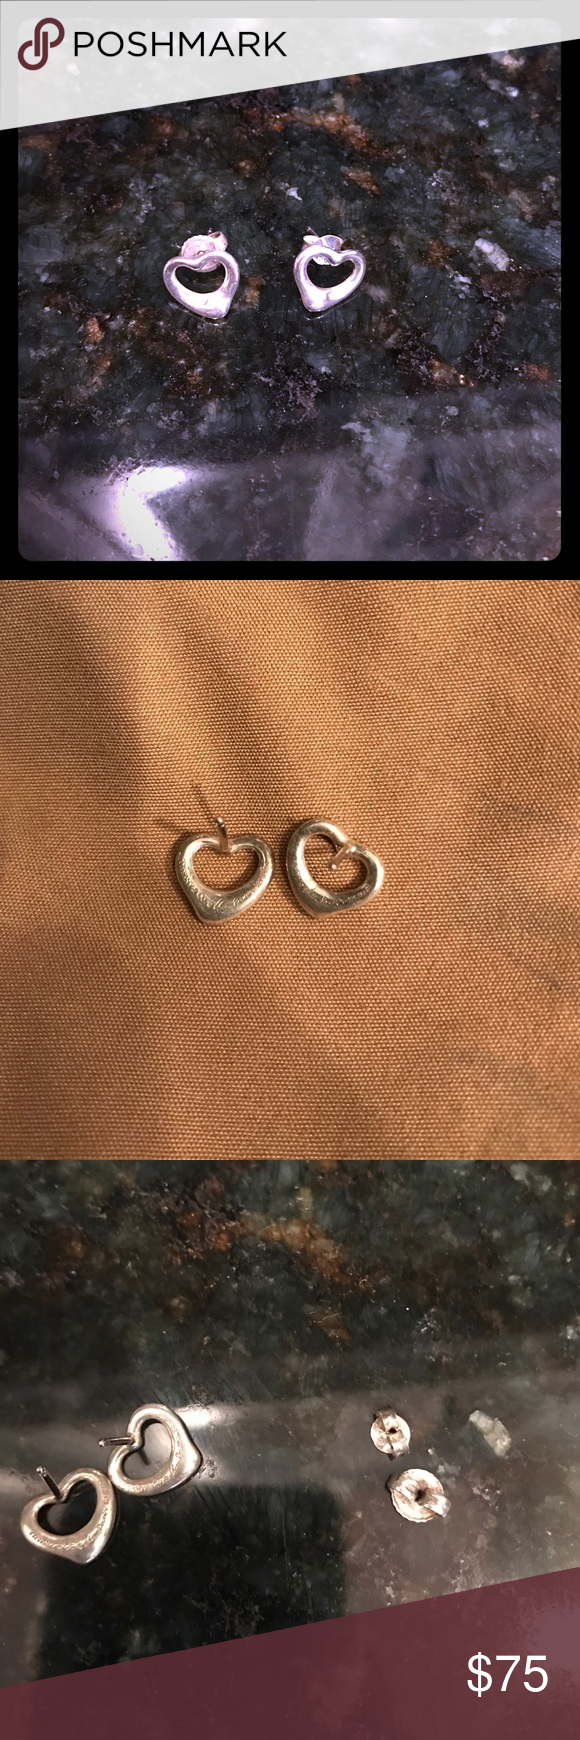 Tiffany Co Elsa Peretti Open Heart Earrings Sterling Silver Purchased For 225 But Lost One Of The Backs So As Shown Back Is A